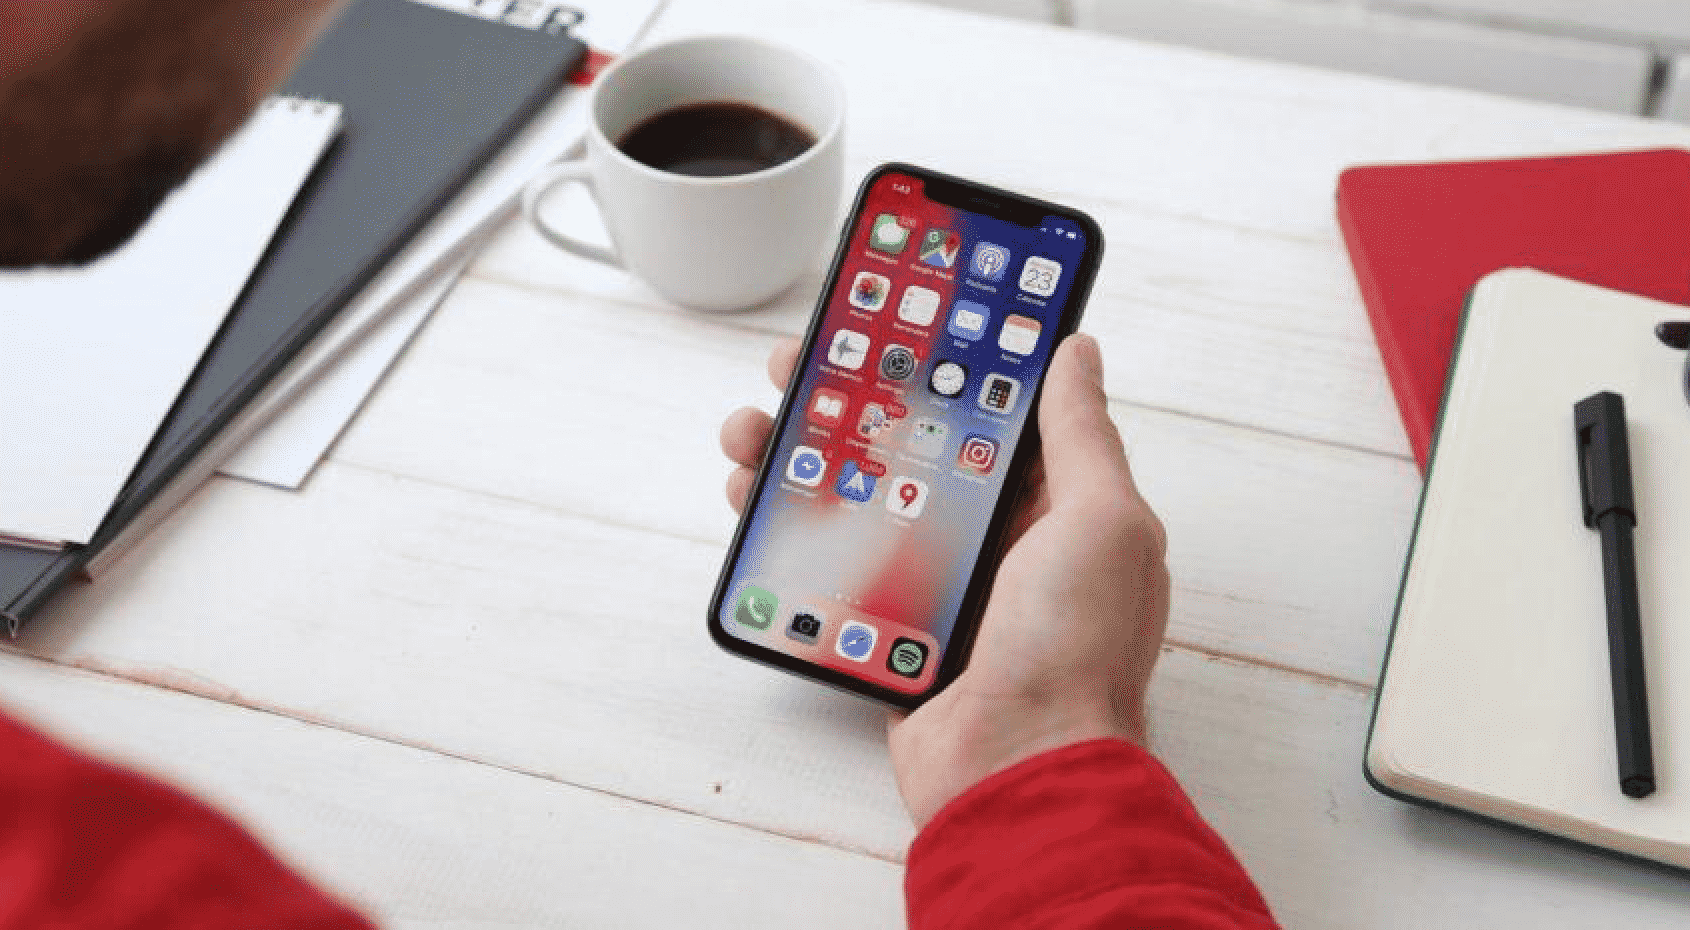 3 iOS Apps That Will Make a Big Splash in Their Industry in 2020